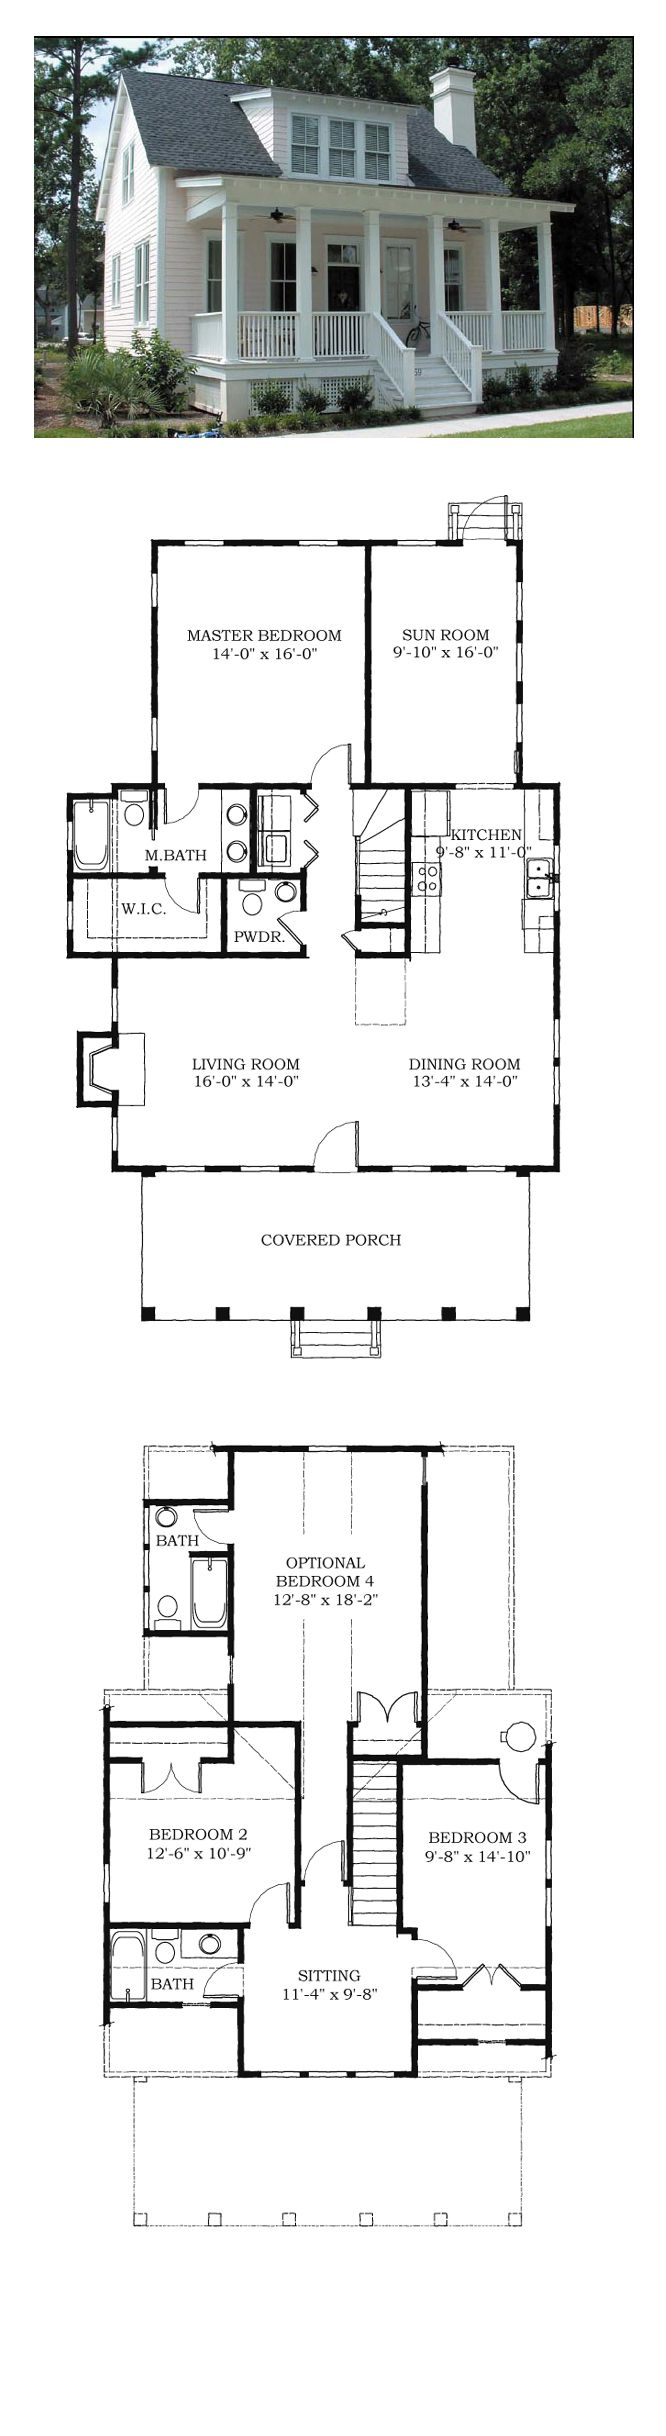 Fabulous 17 Best Ideas About Small House Plans On Pinterest Small House Largest Home Design Picture Inspirations Pitcheantrous